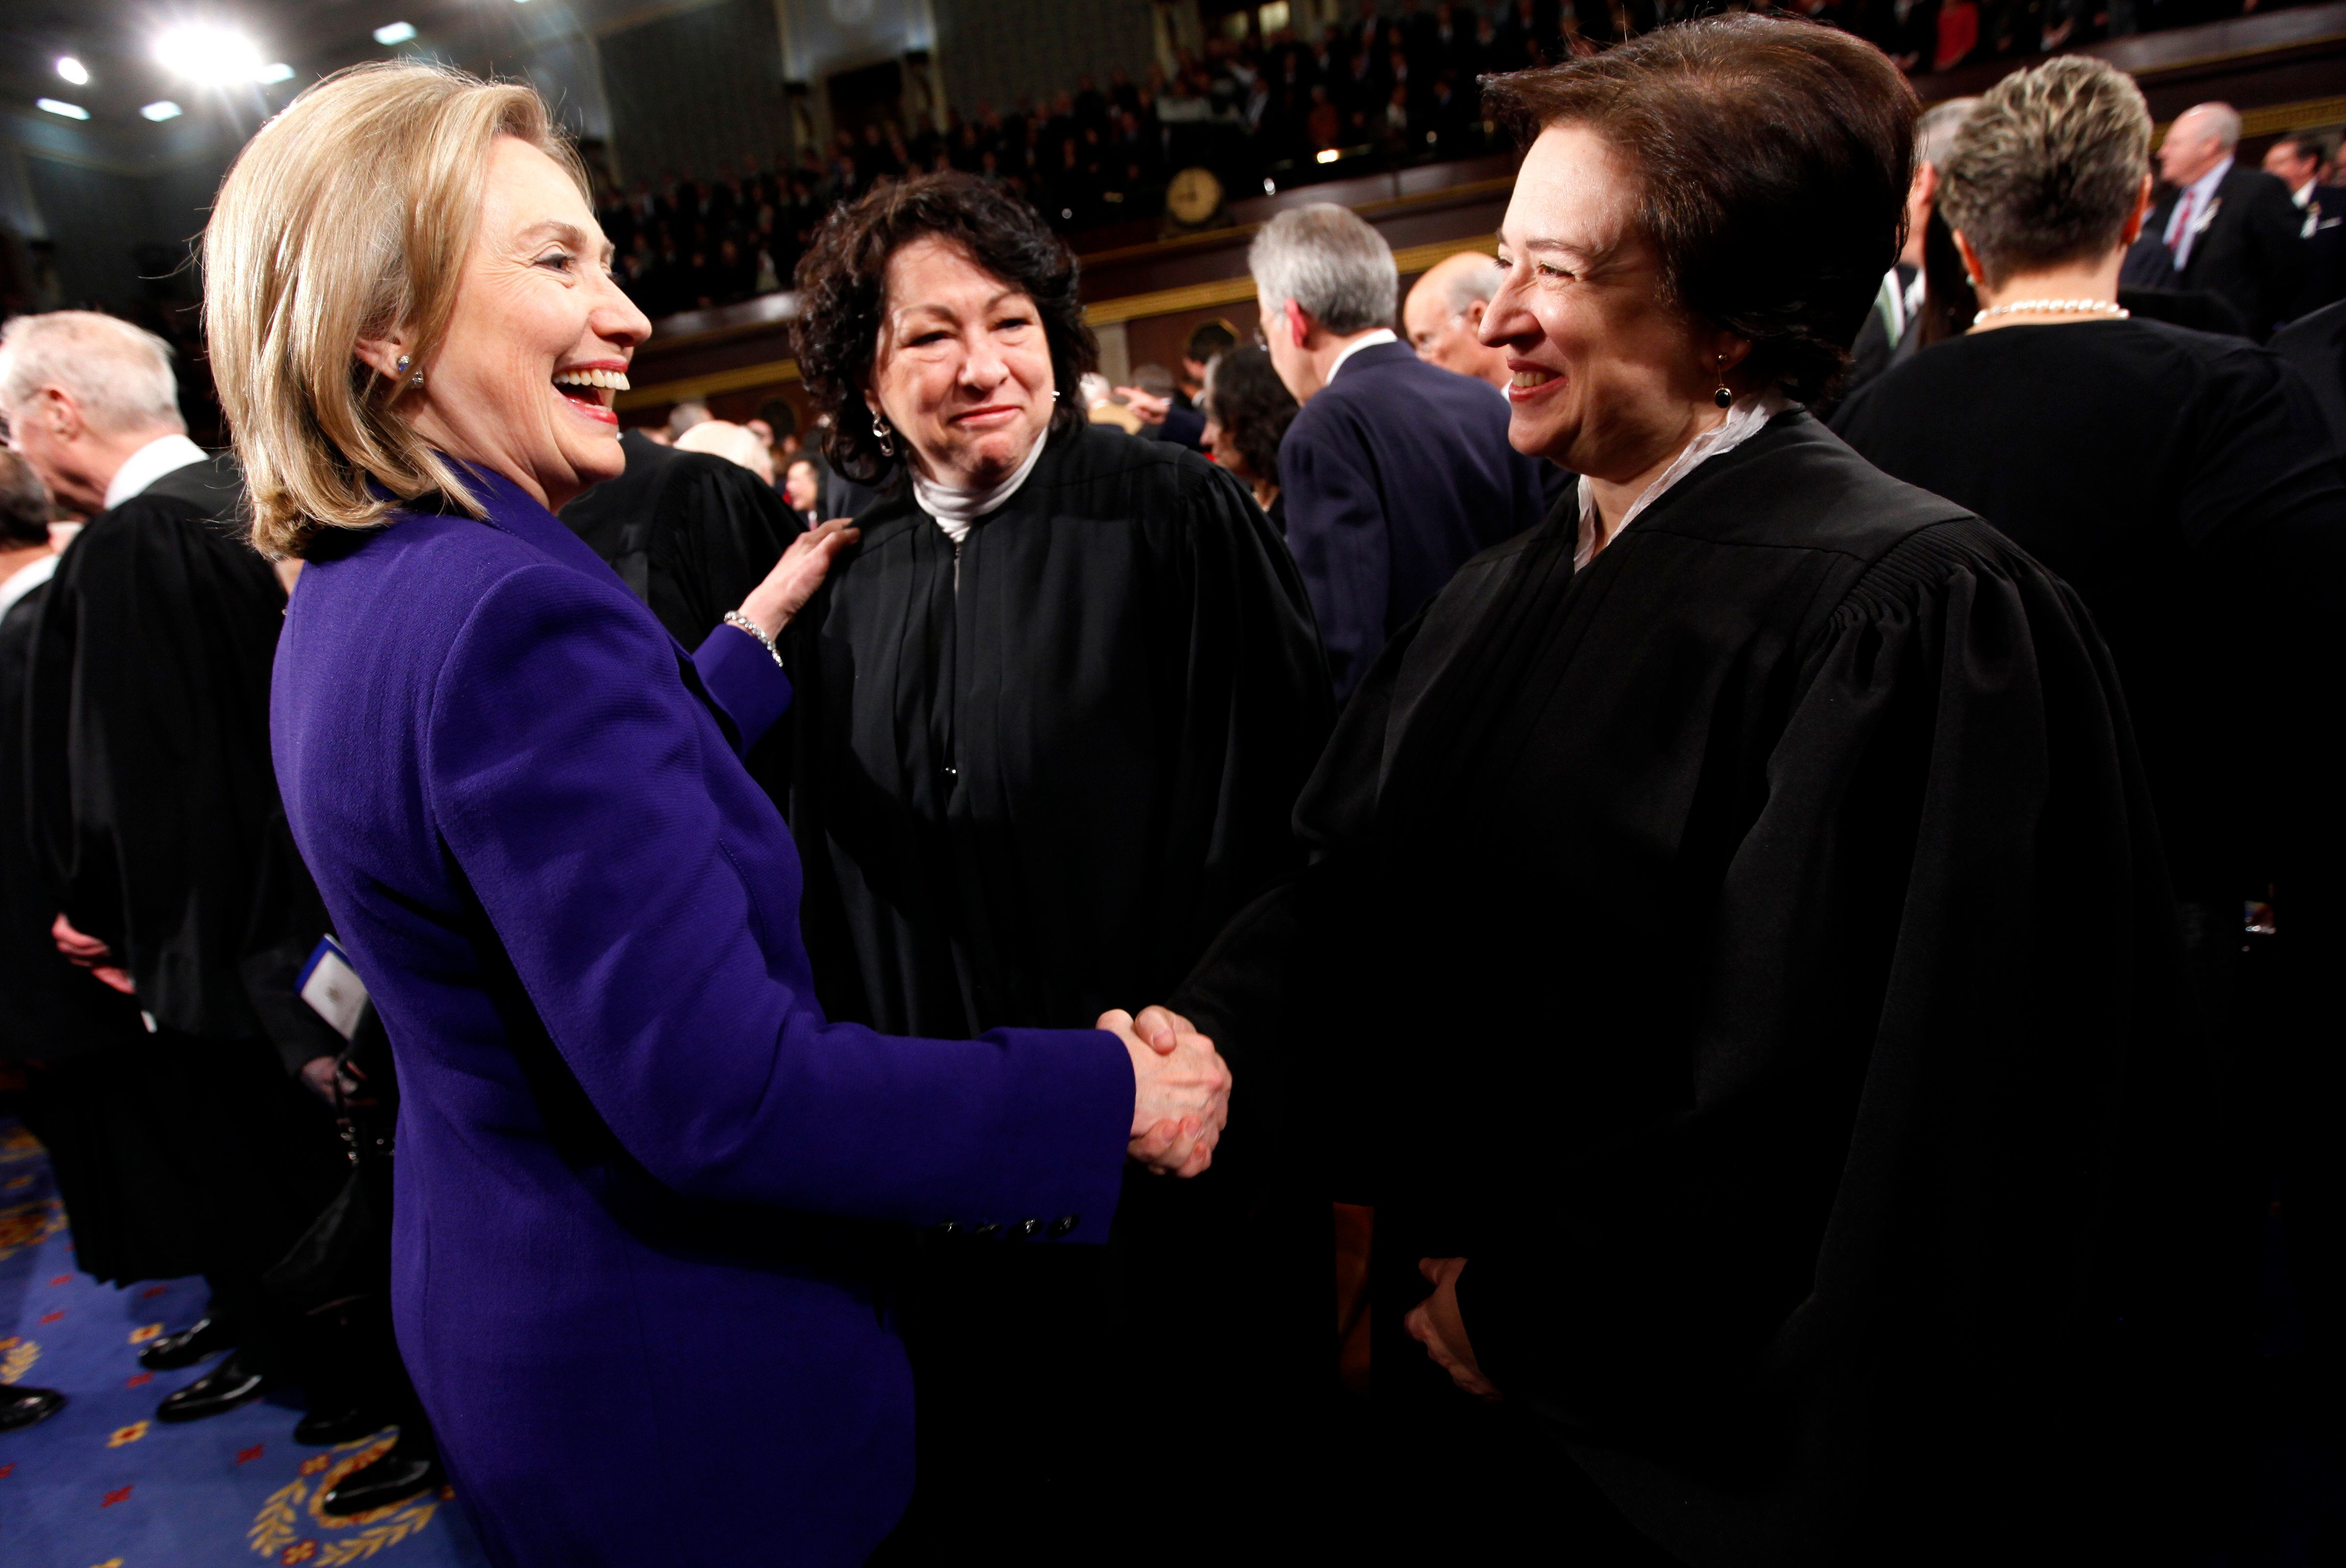 Elena Kagan, here shaking hands with Hillary Clinton at the State of the Union address in 2011, has a few thoughts on how the